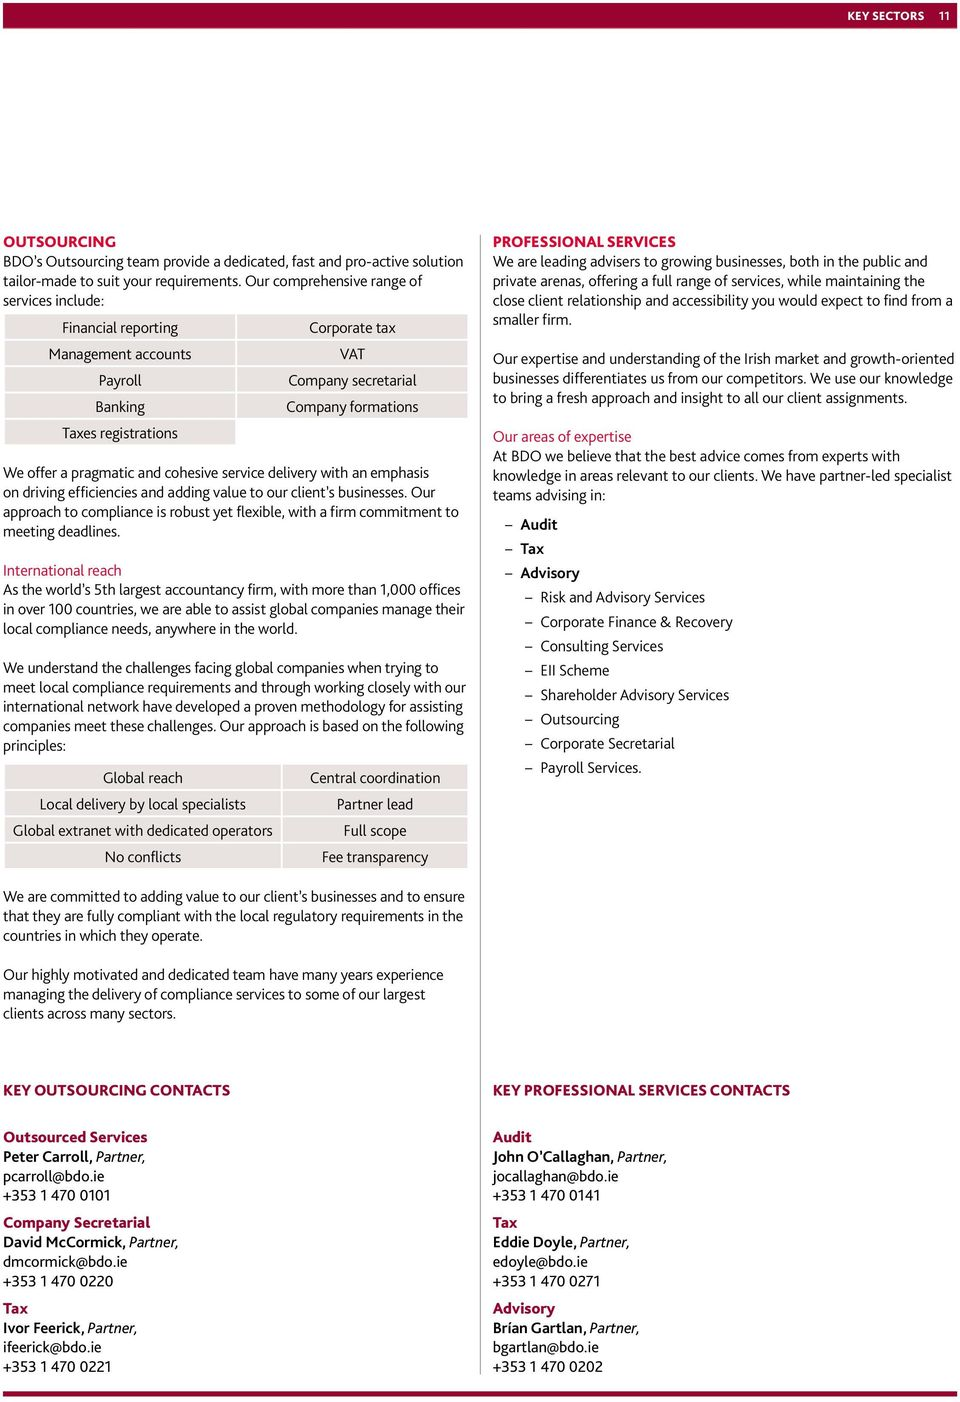 BDO WHO WE ARE & WHAT WE DO - PDF